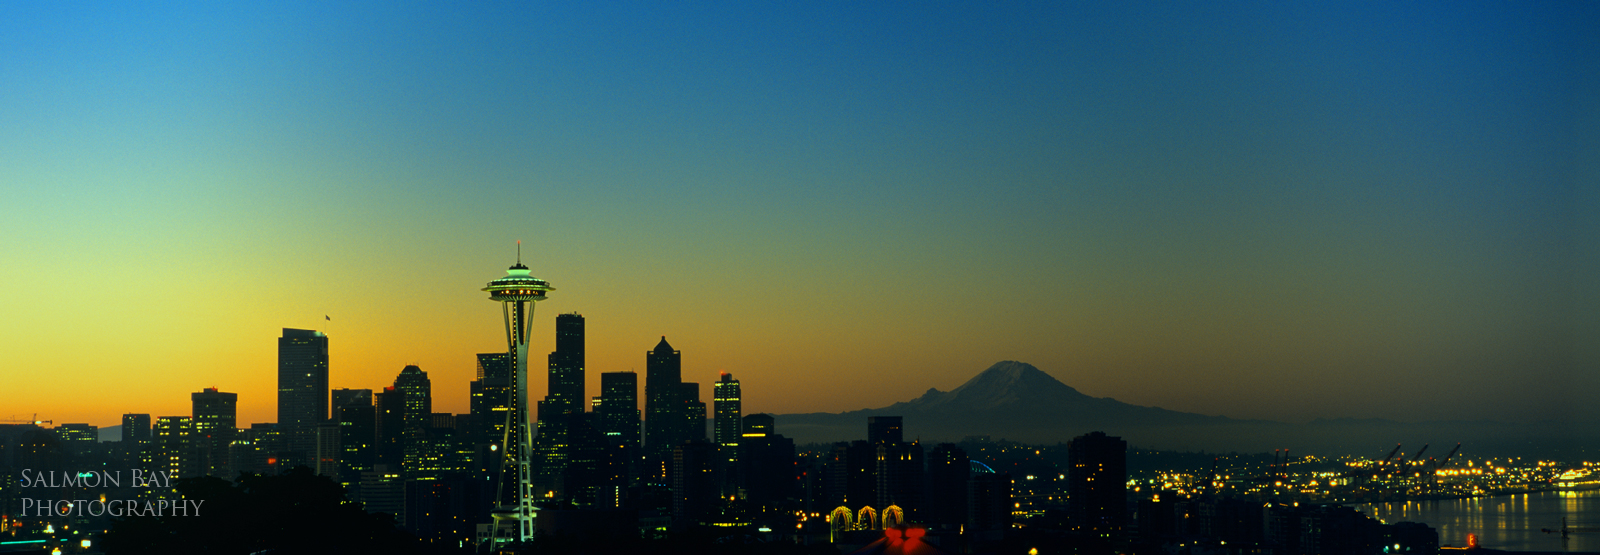 seattle skyline wallpaper 2